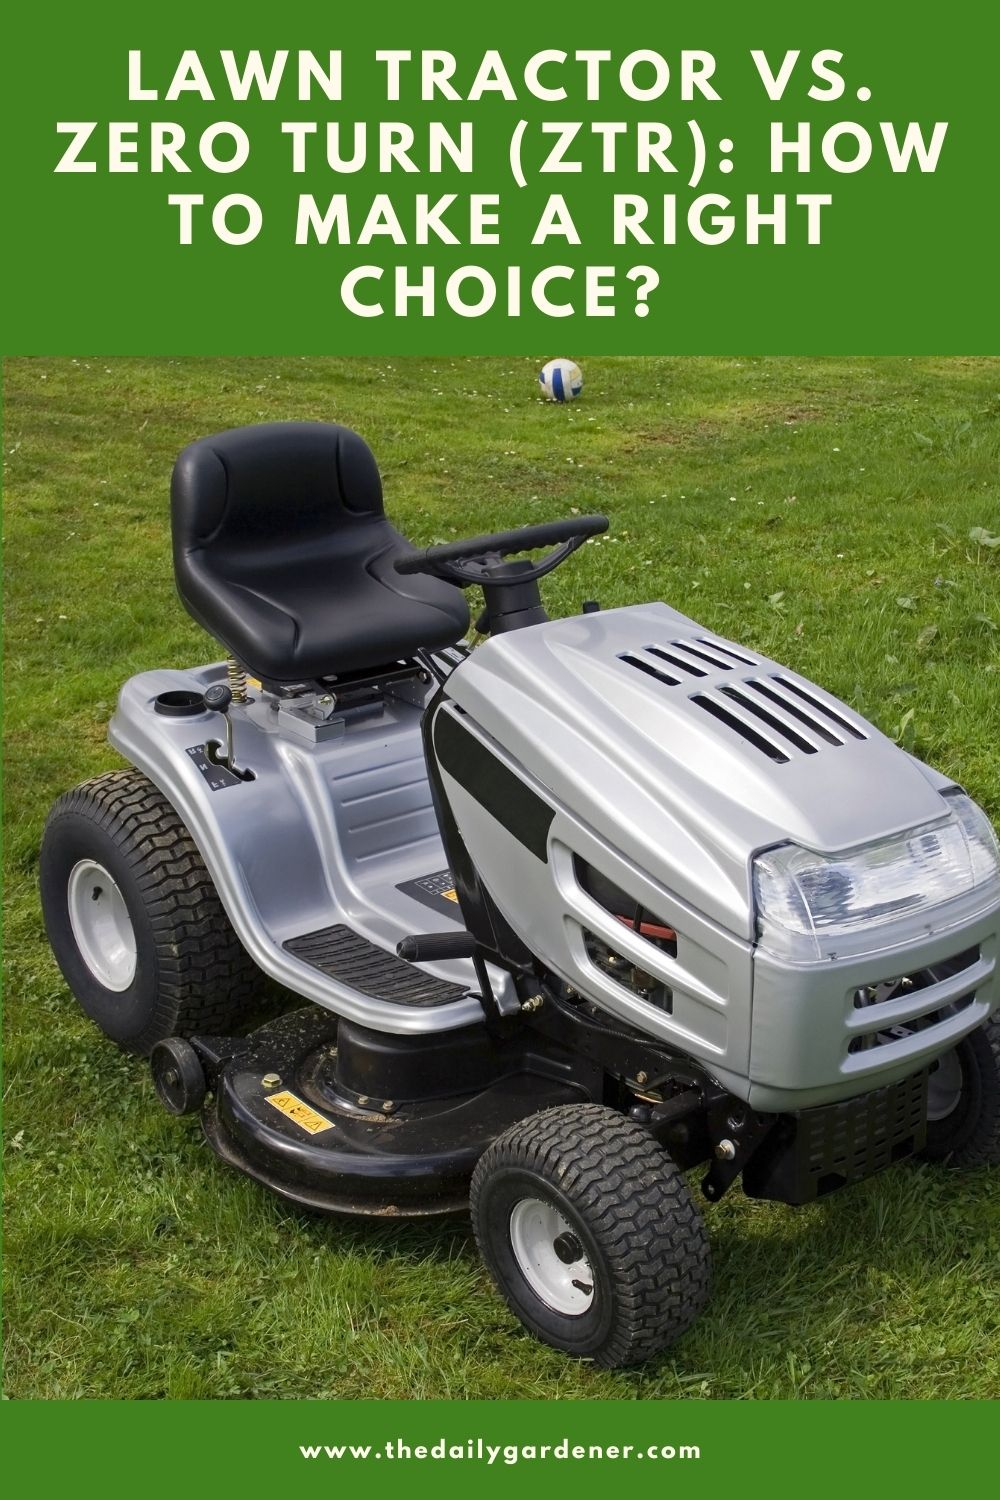 Lawn Tractor vs. Zero Turn (ZTR) How to Make a Right Choice 2